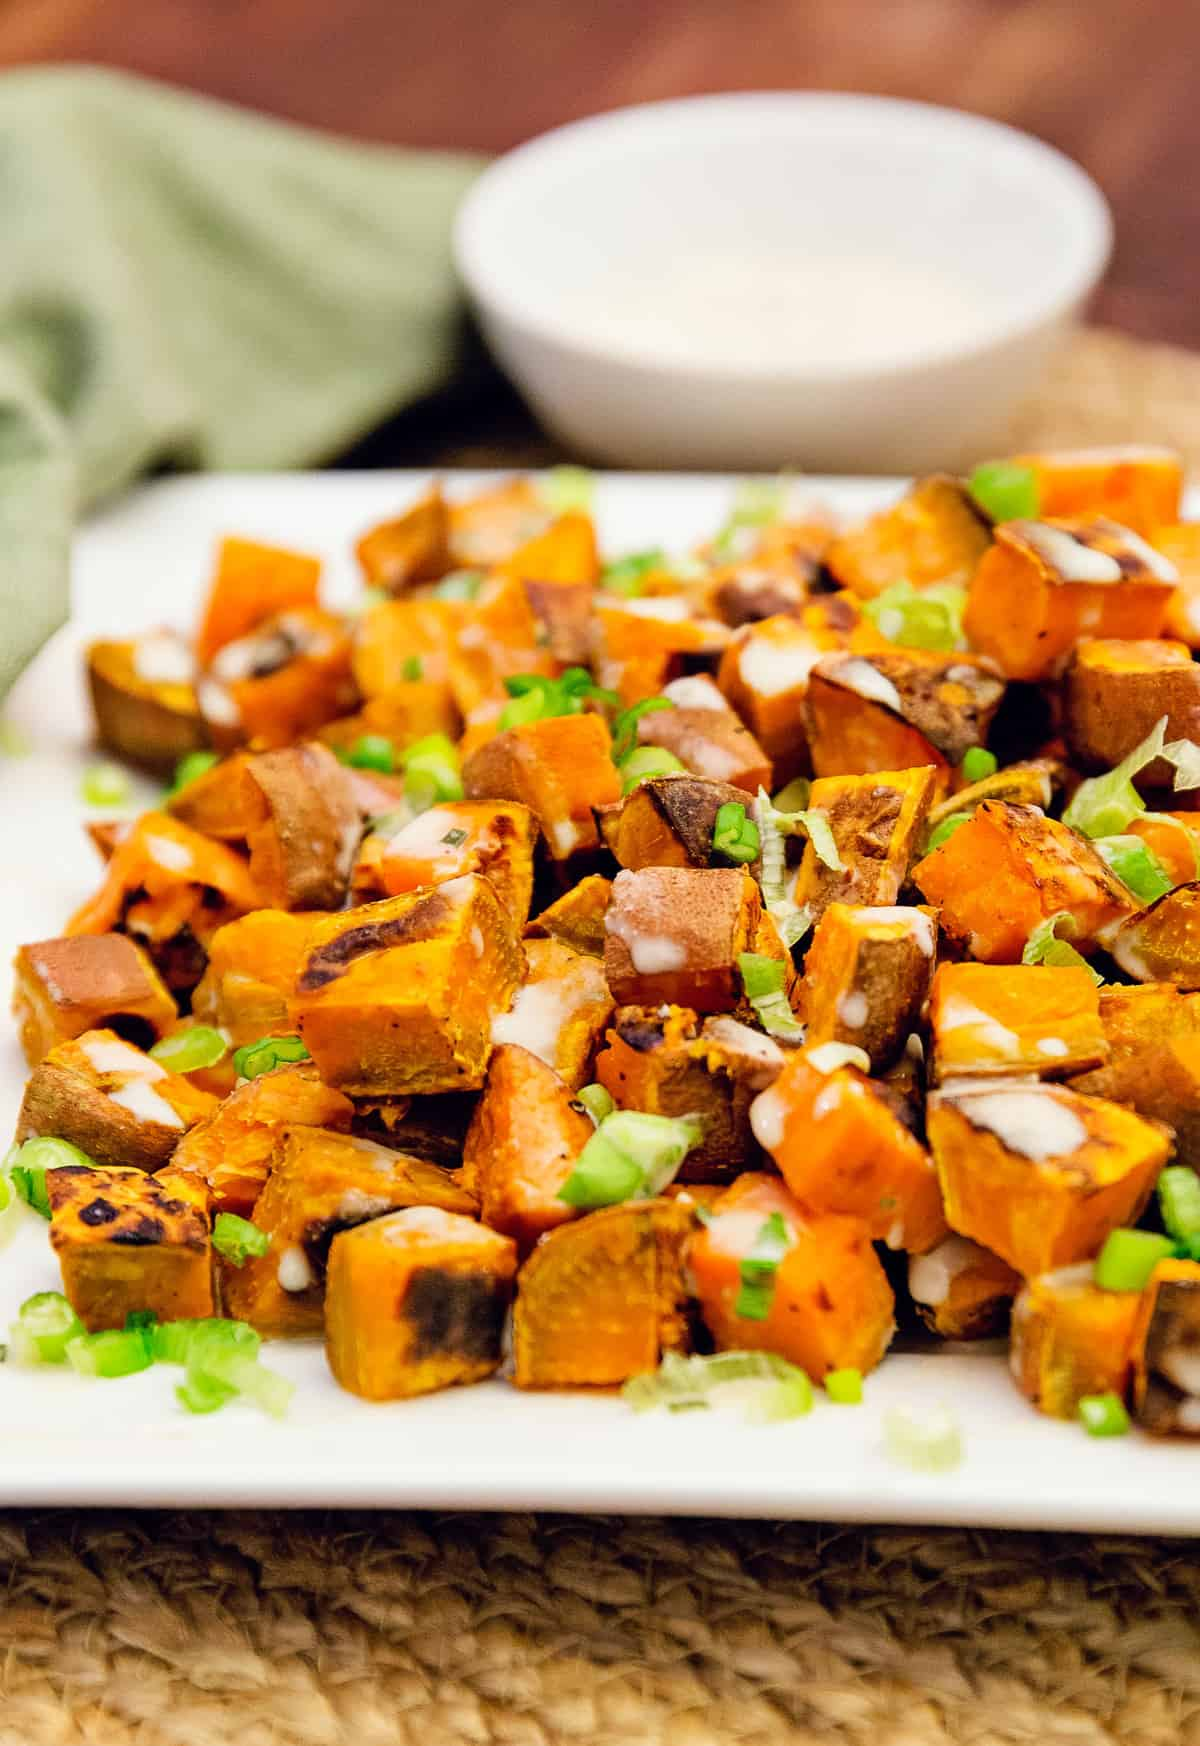 sweet potatoes with tahini sauce, sweet potatoes, vegan, vegetarian, whole food plant based, gluten free, recipe, wfpb, healthy, oil free, no refined sugar, no oil, refined sugar free, lunch, dinner, side, side dish, easy, fast, quick, dairy free,